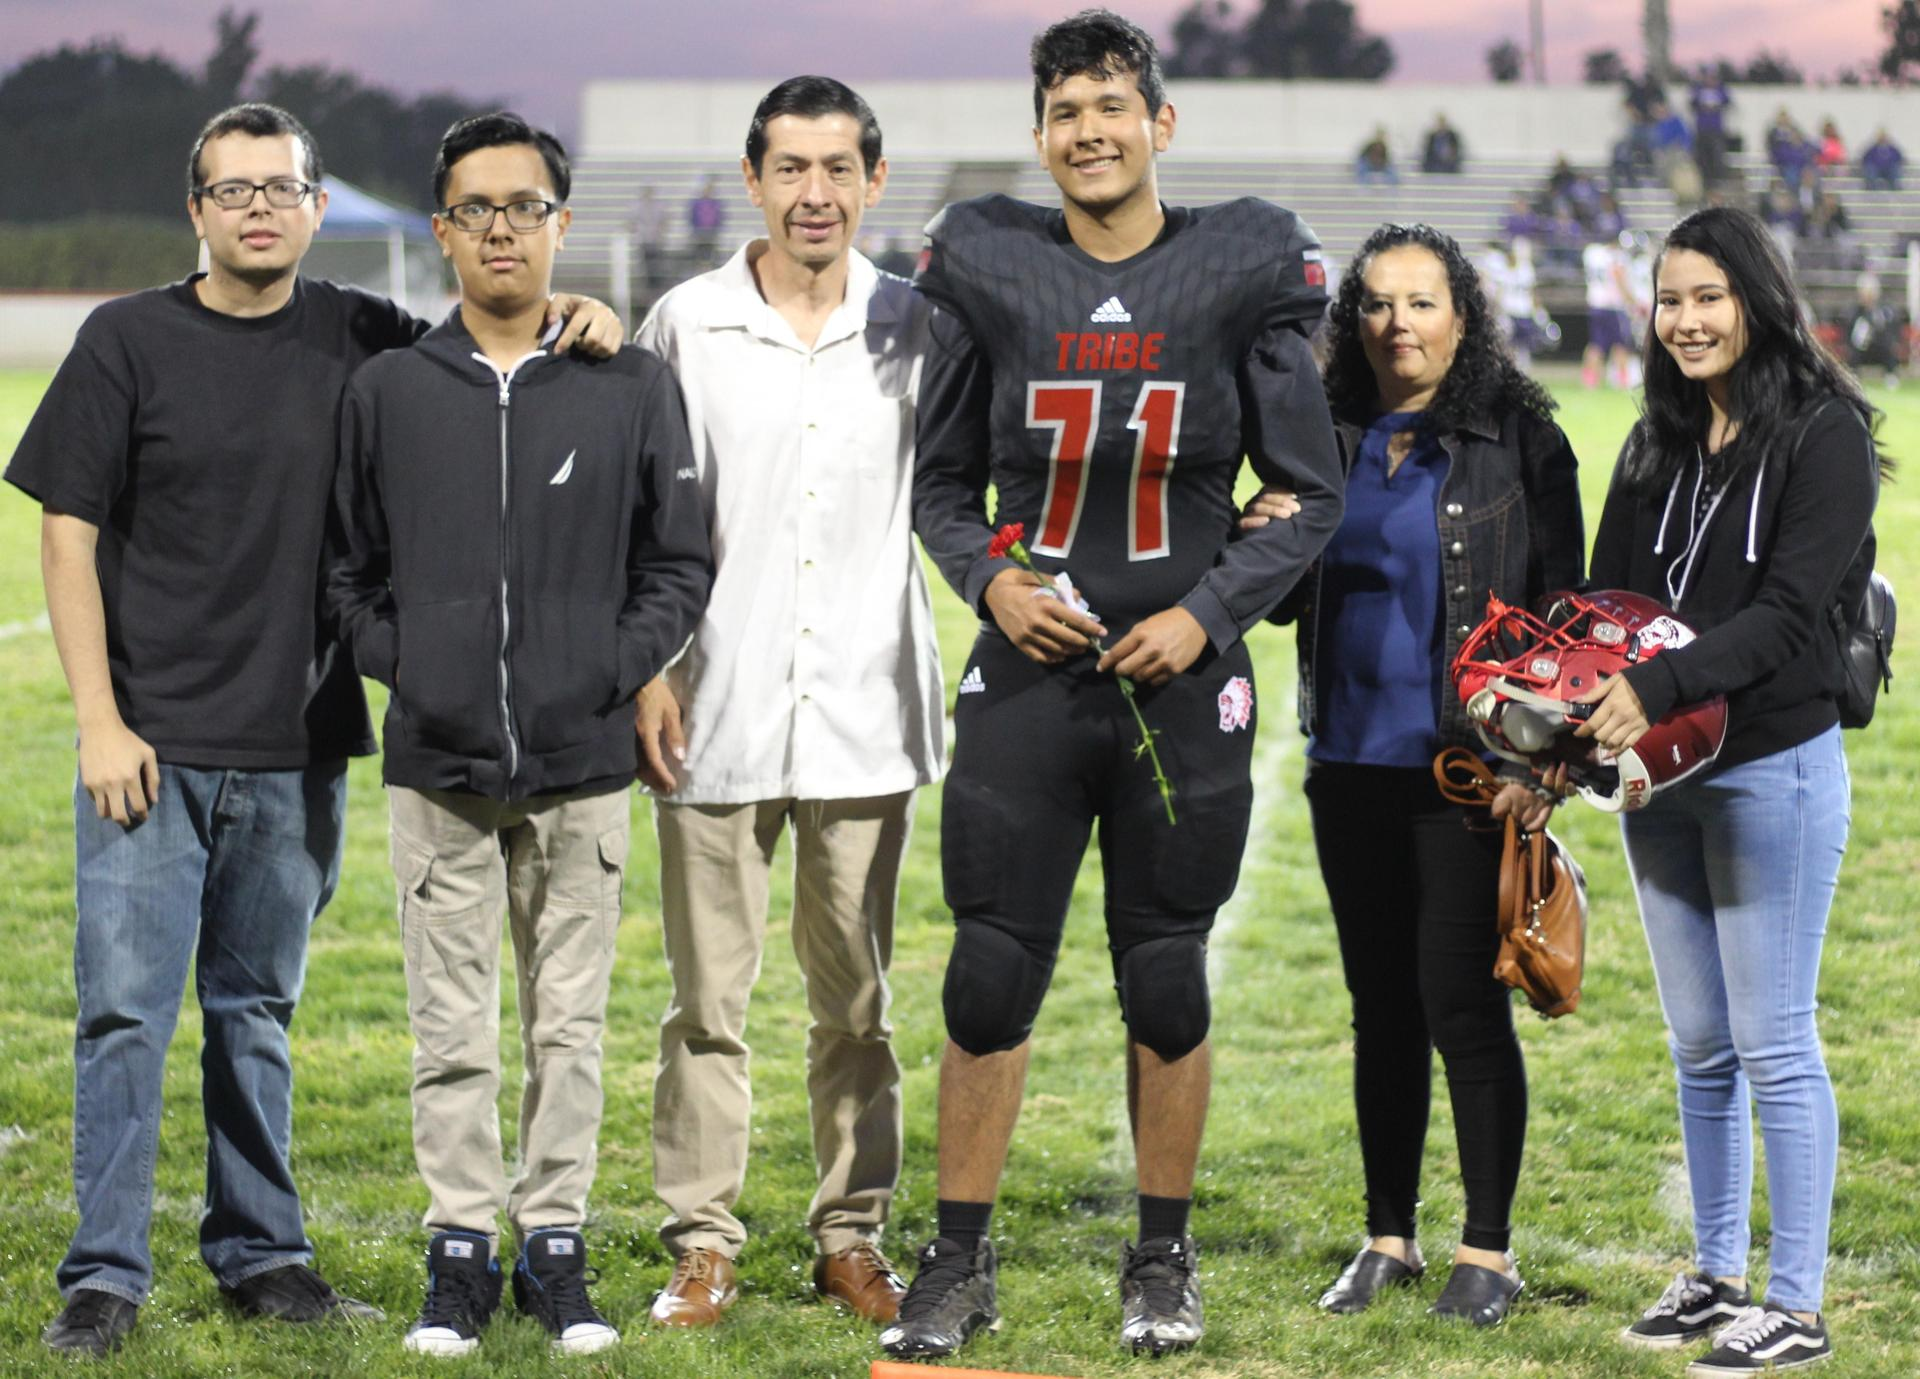 Senior football player Andres Martinez and his escorts.